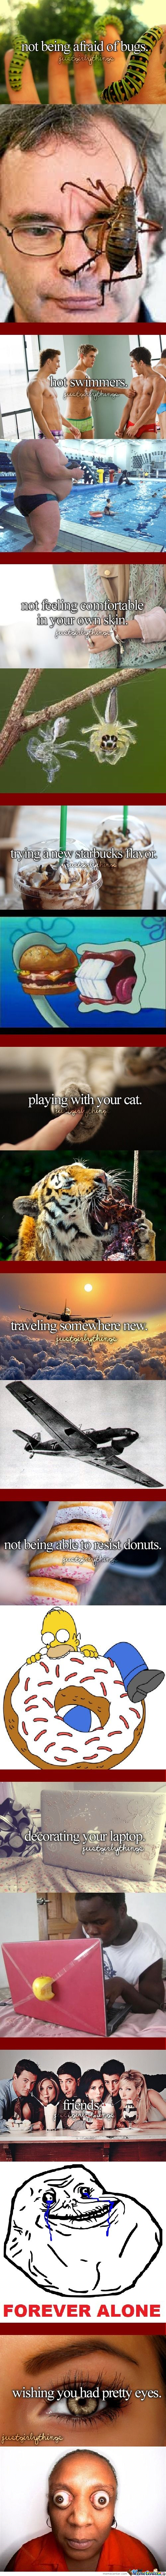 Just Girly Things Compilation